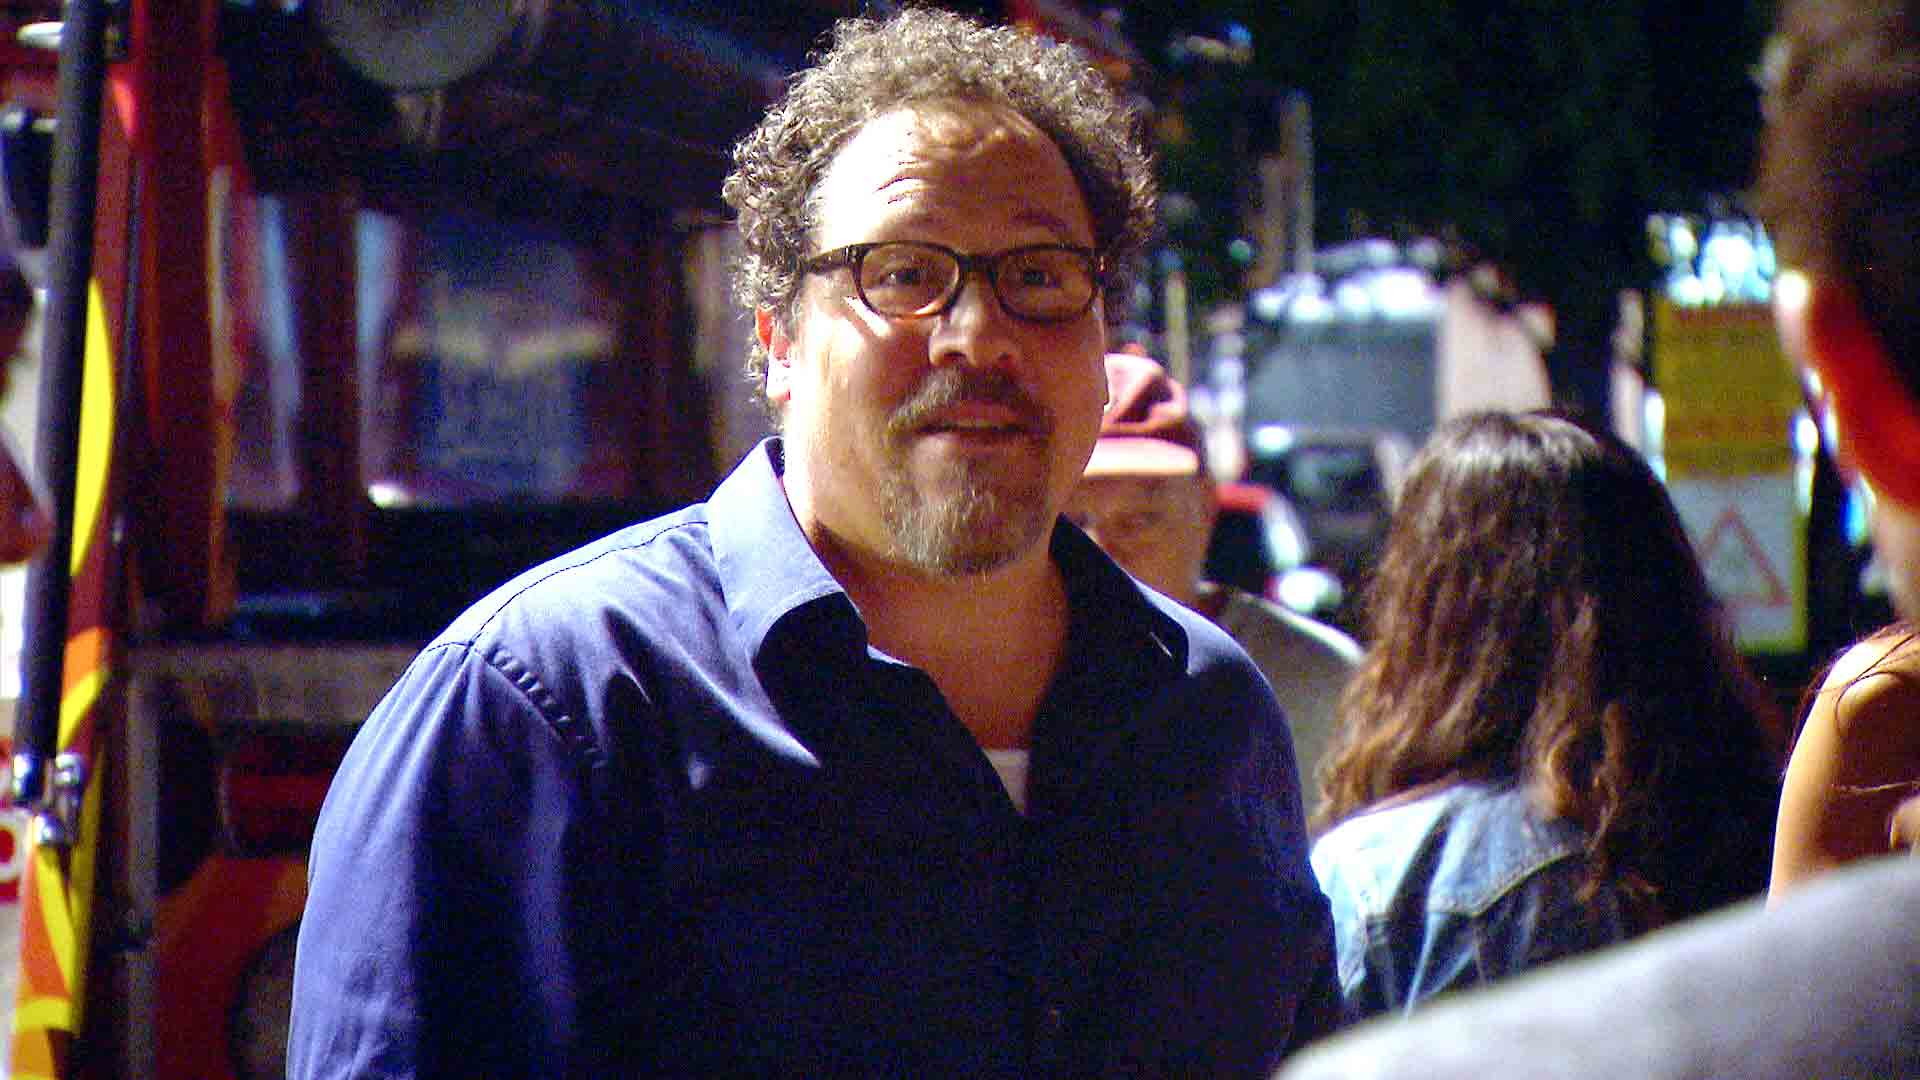 Oysters with Jon Favreau